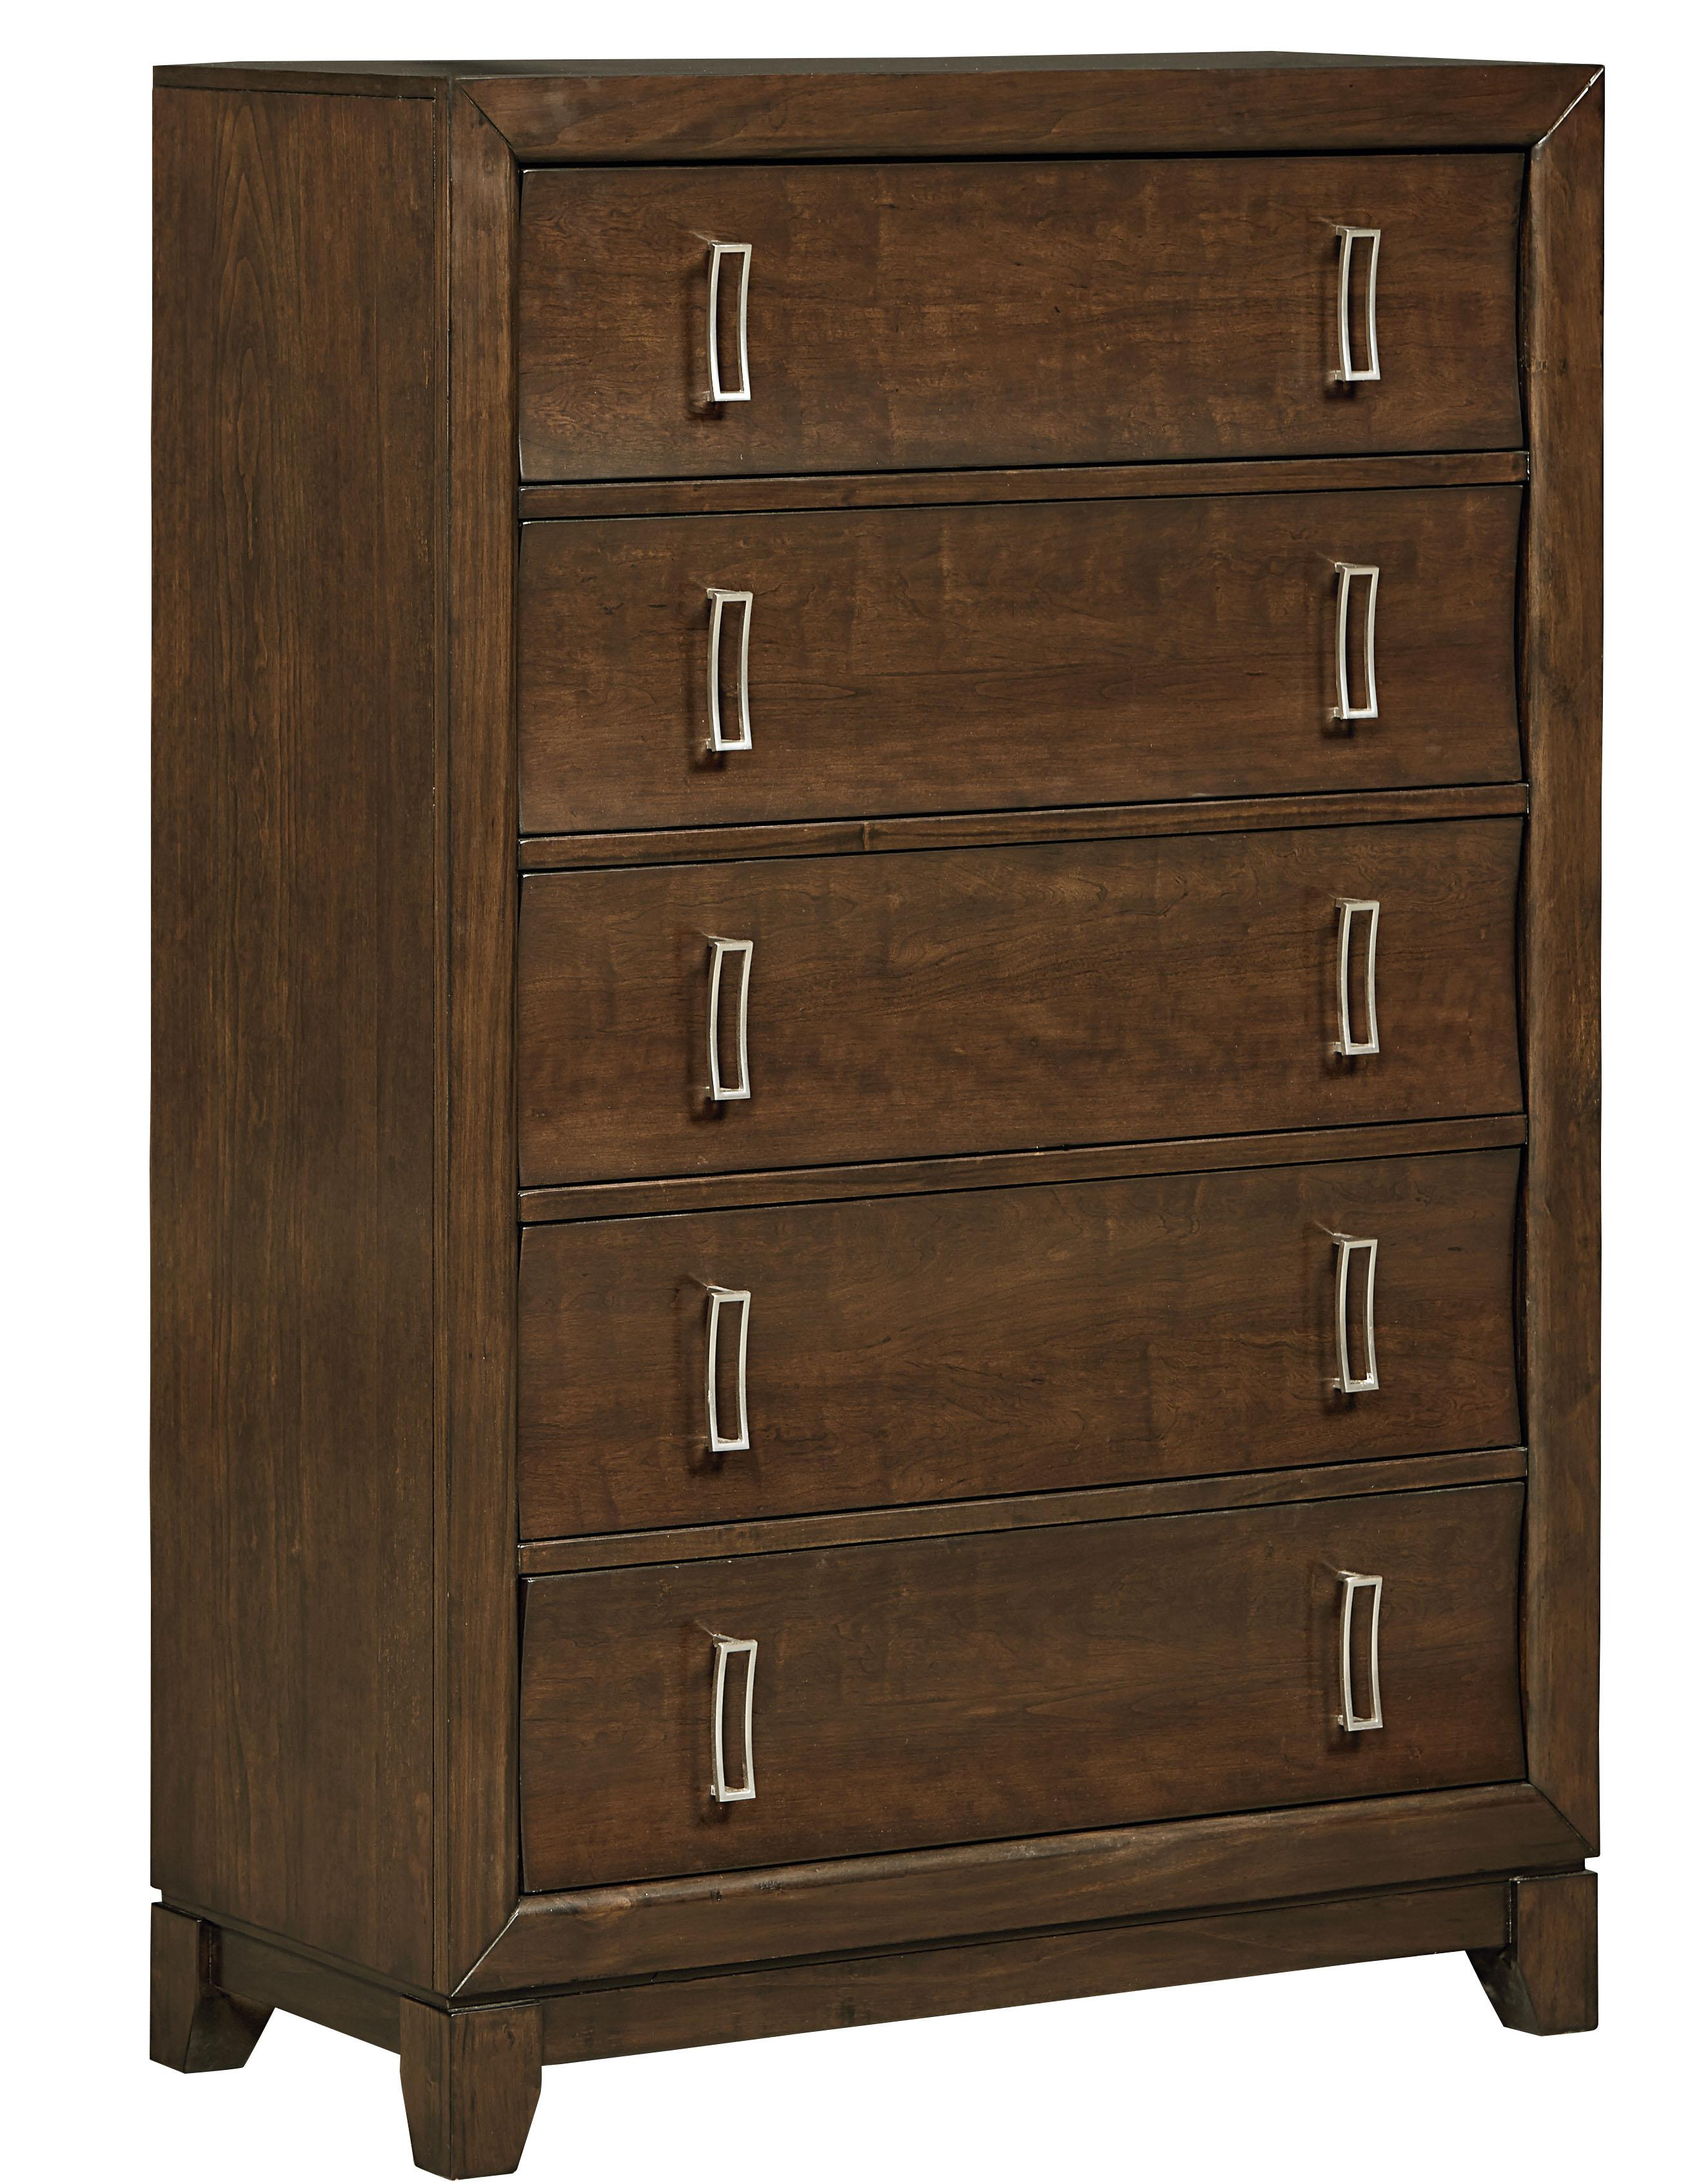 Standard Furniture Amanoi Chest of Drawers                   - Item Number: 86805